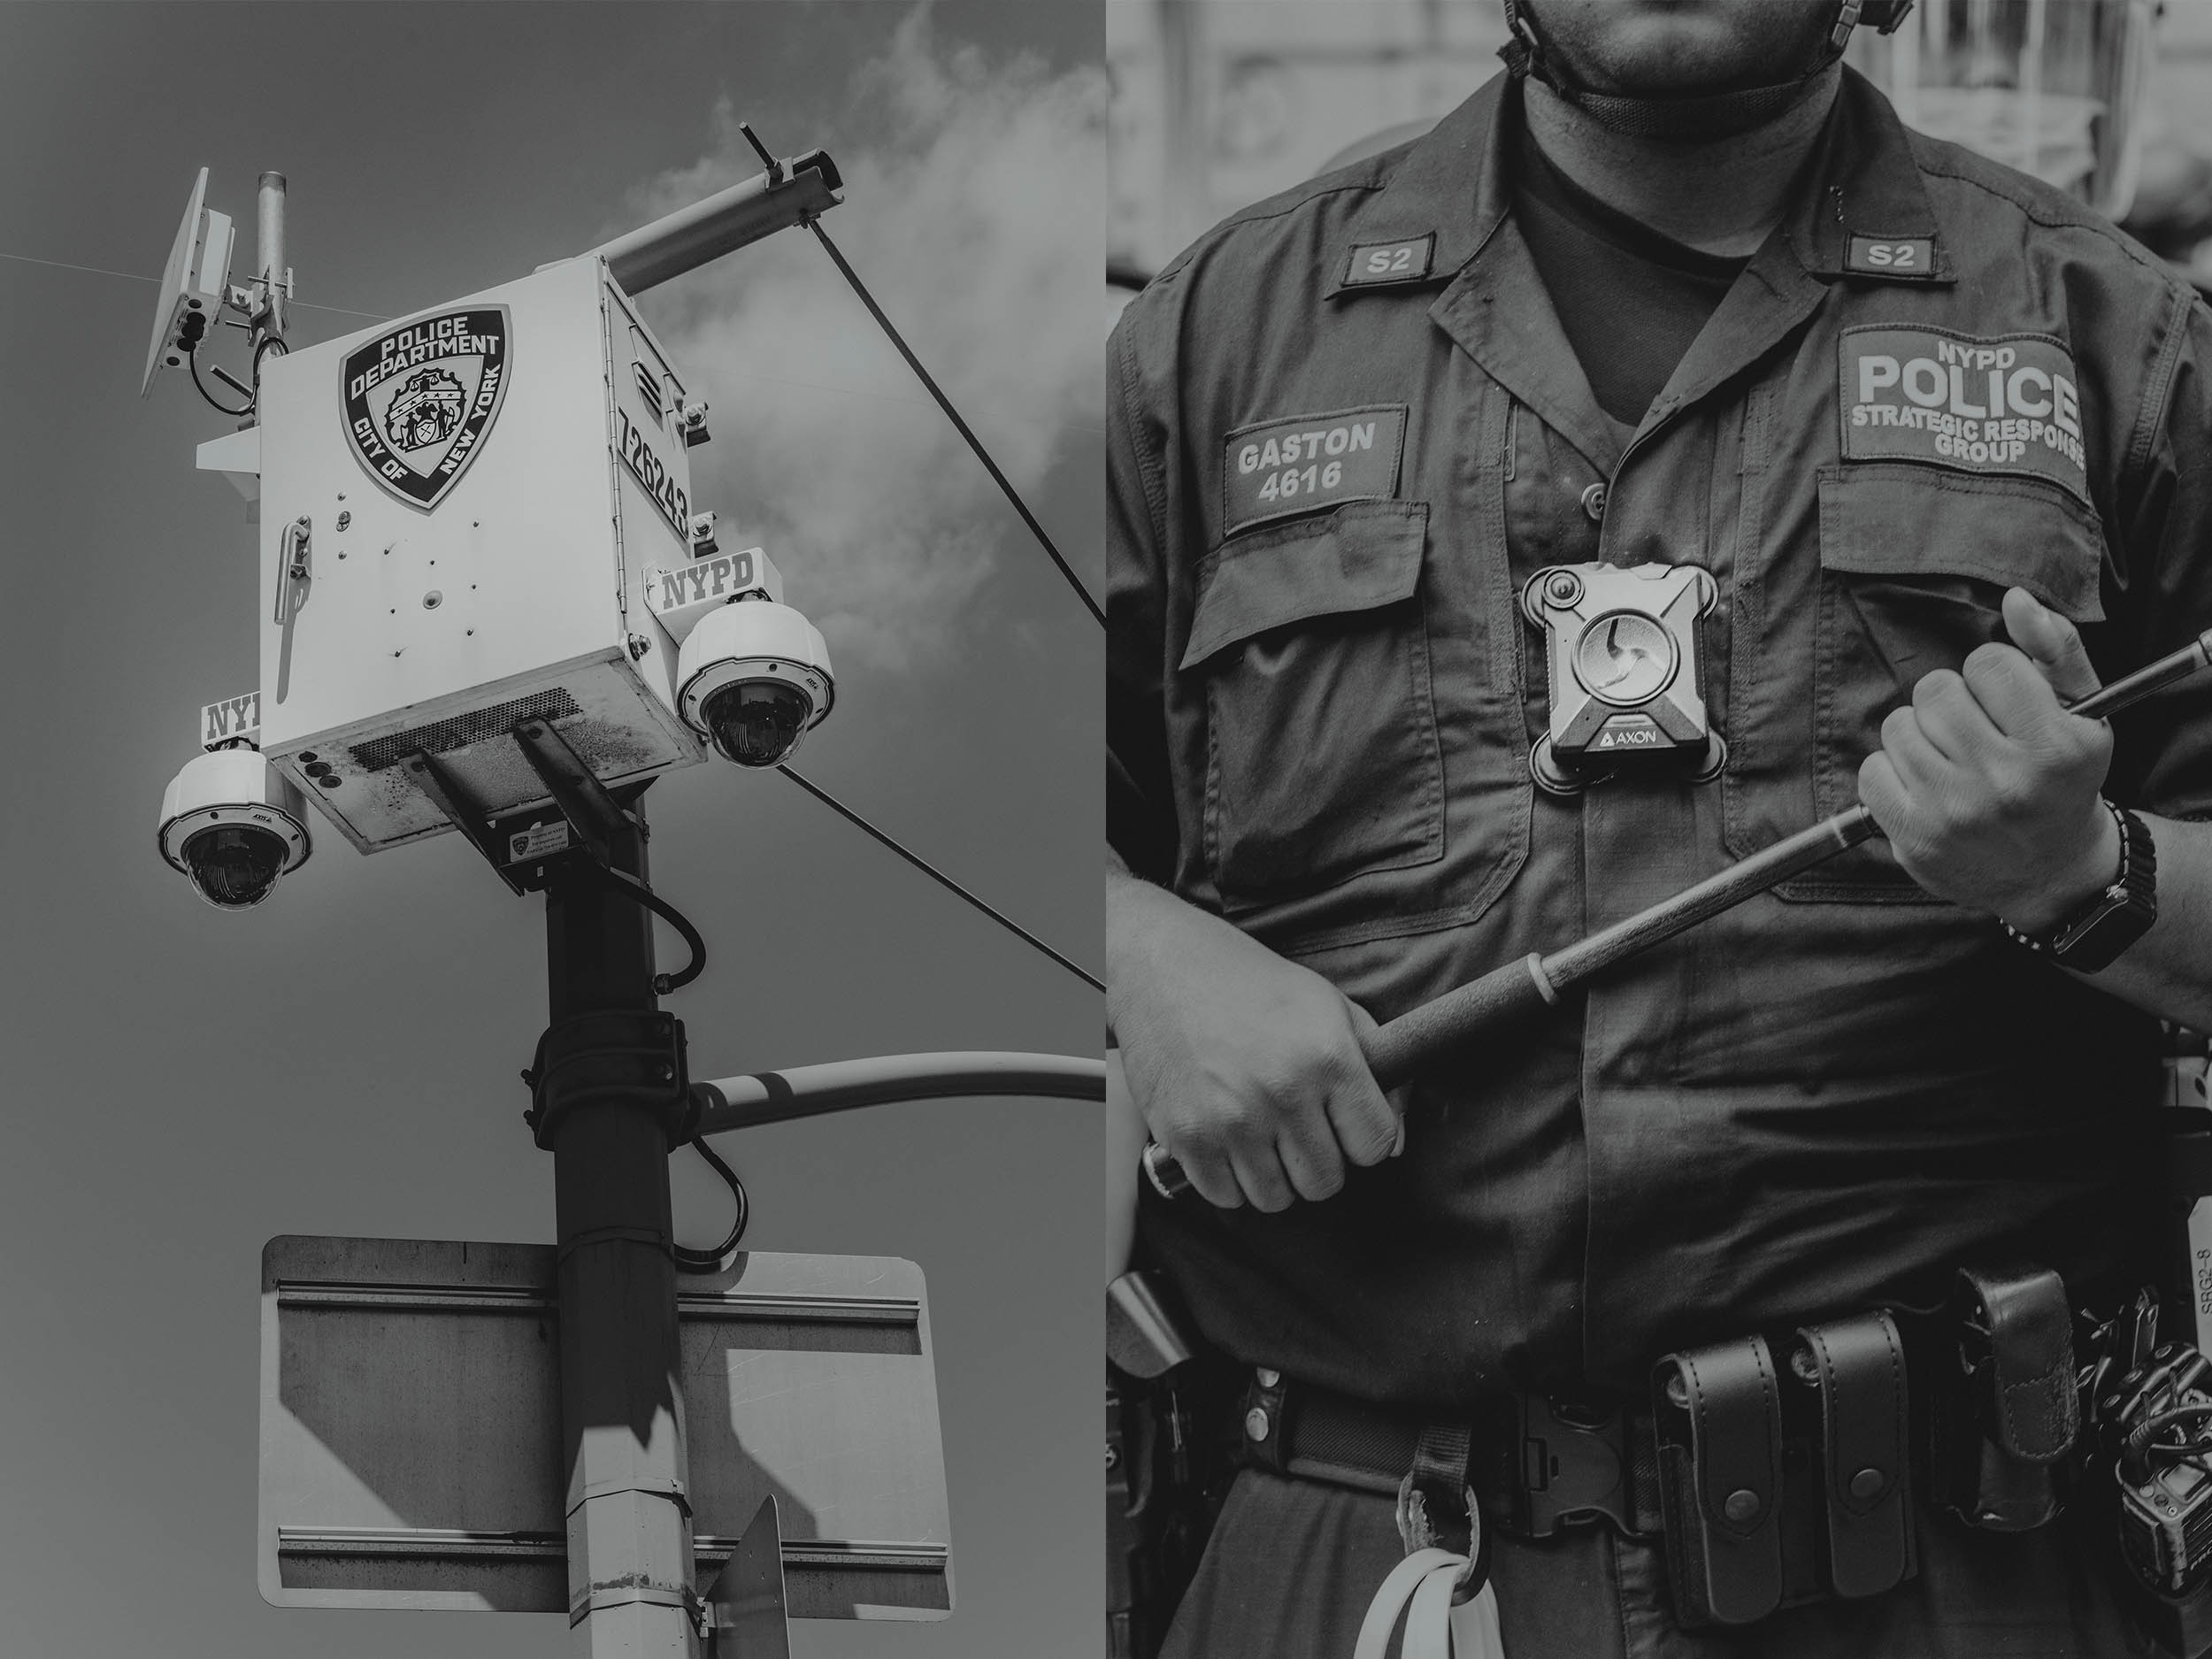 A new law seeks to expose the NYPD's secret surveillance technology